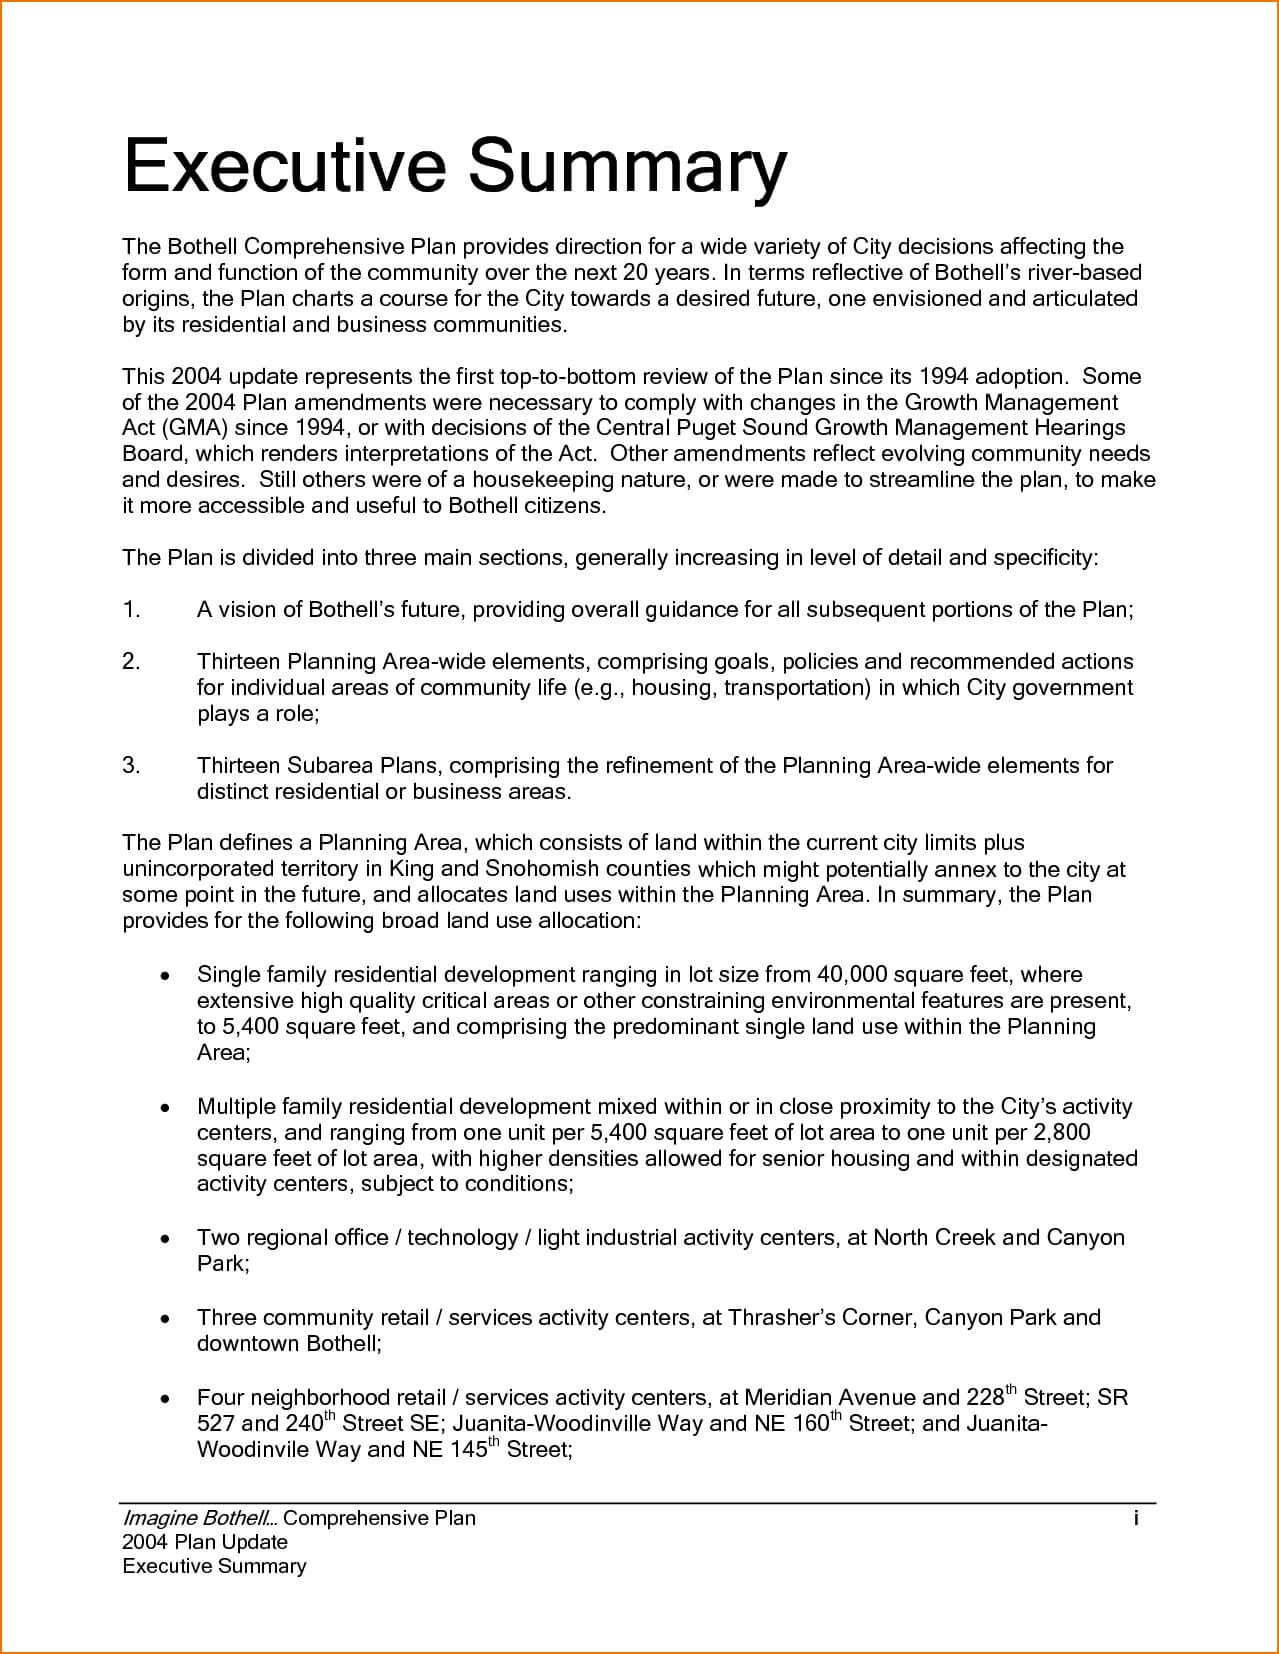 Executive Summary Example Incident Report Template Sample Pertaining To Executive Summary Report Template